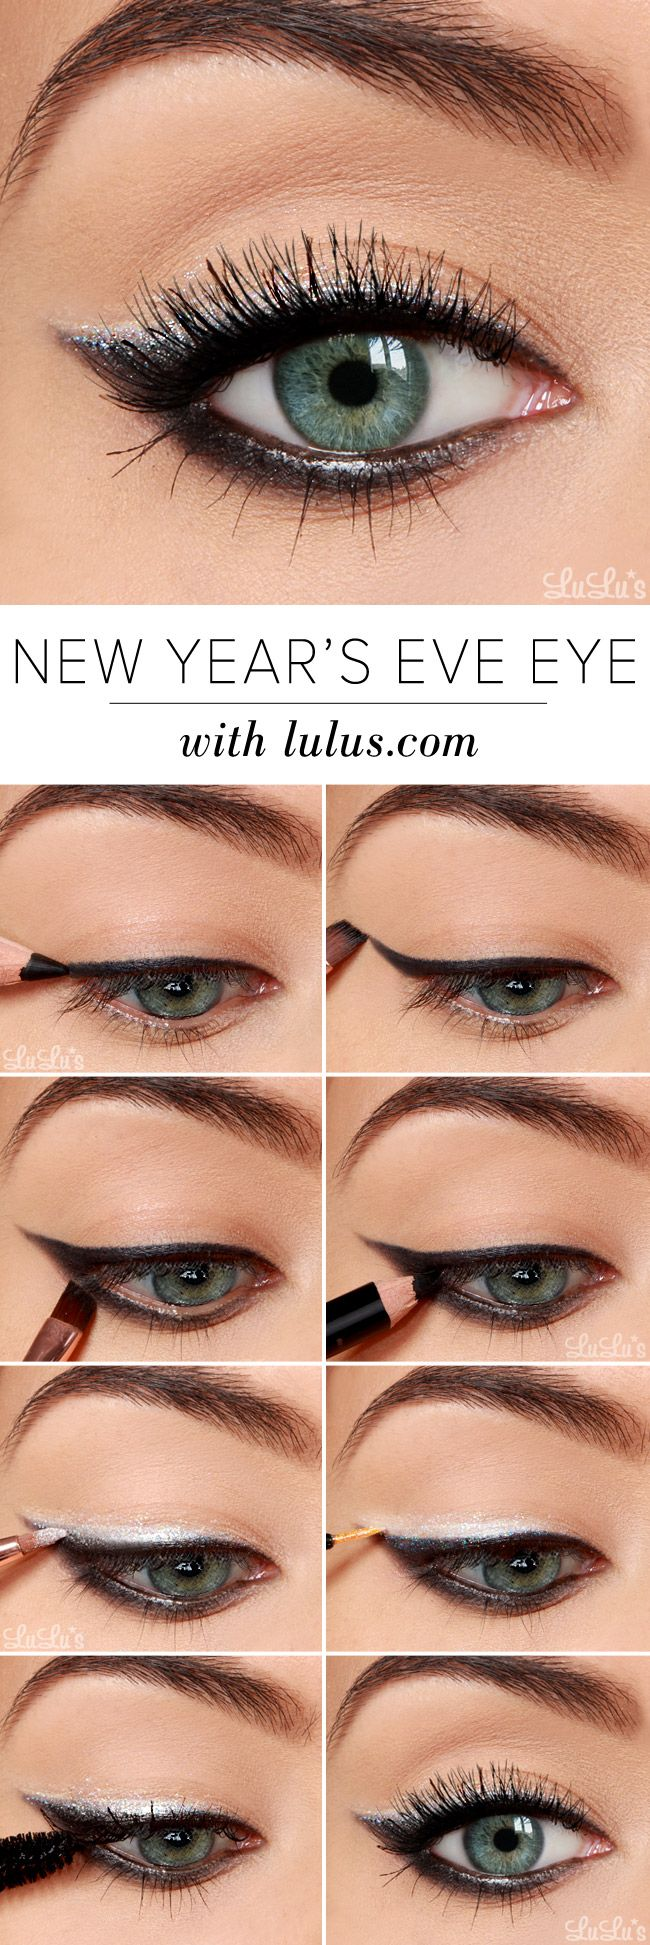 Lulus How-To: New Year's Eve Eyeshadow Tutorial